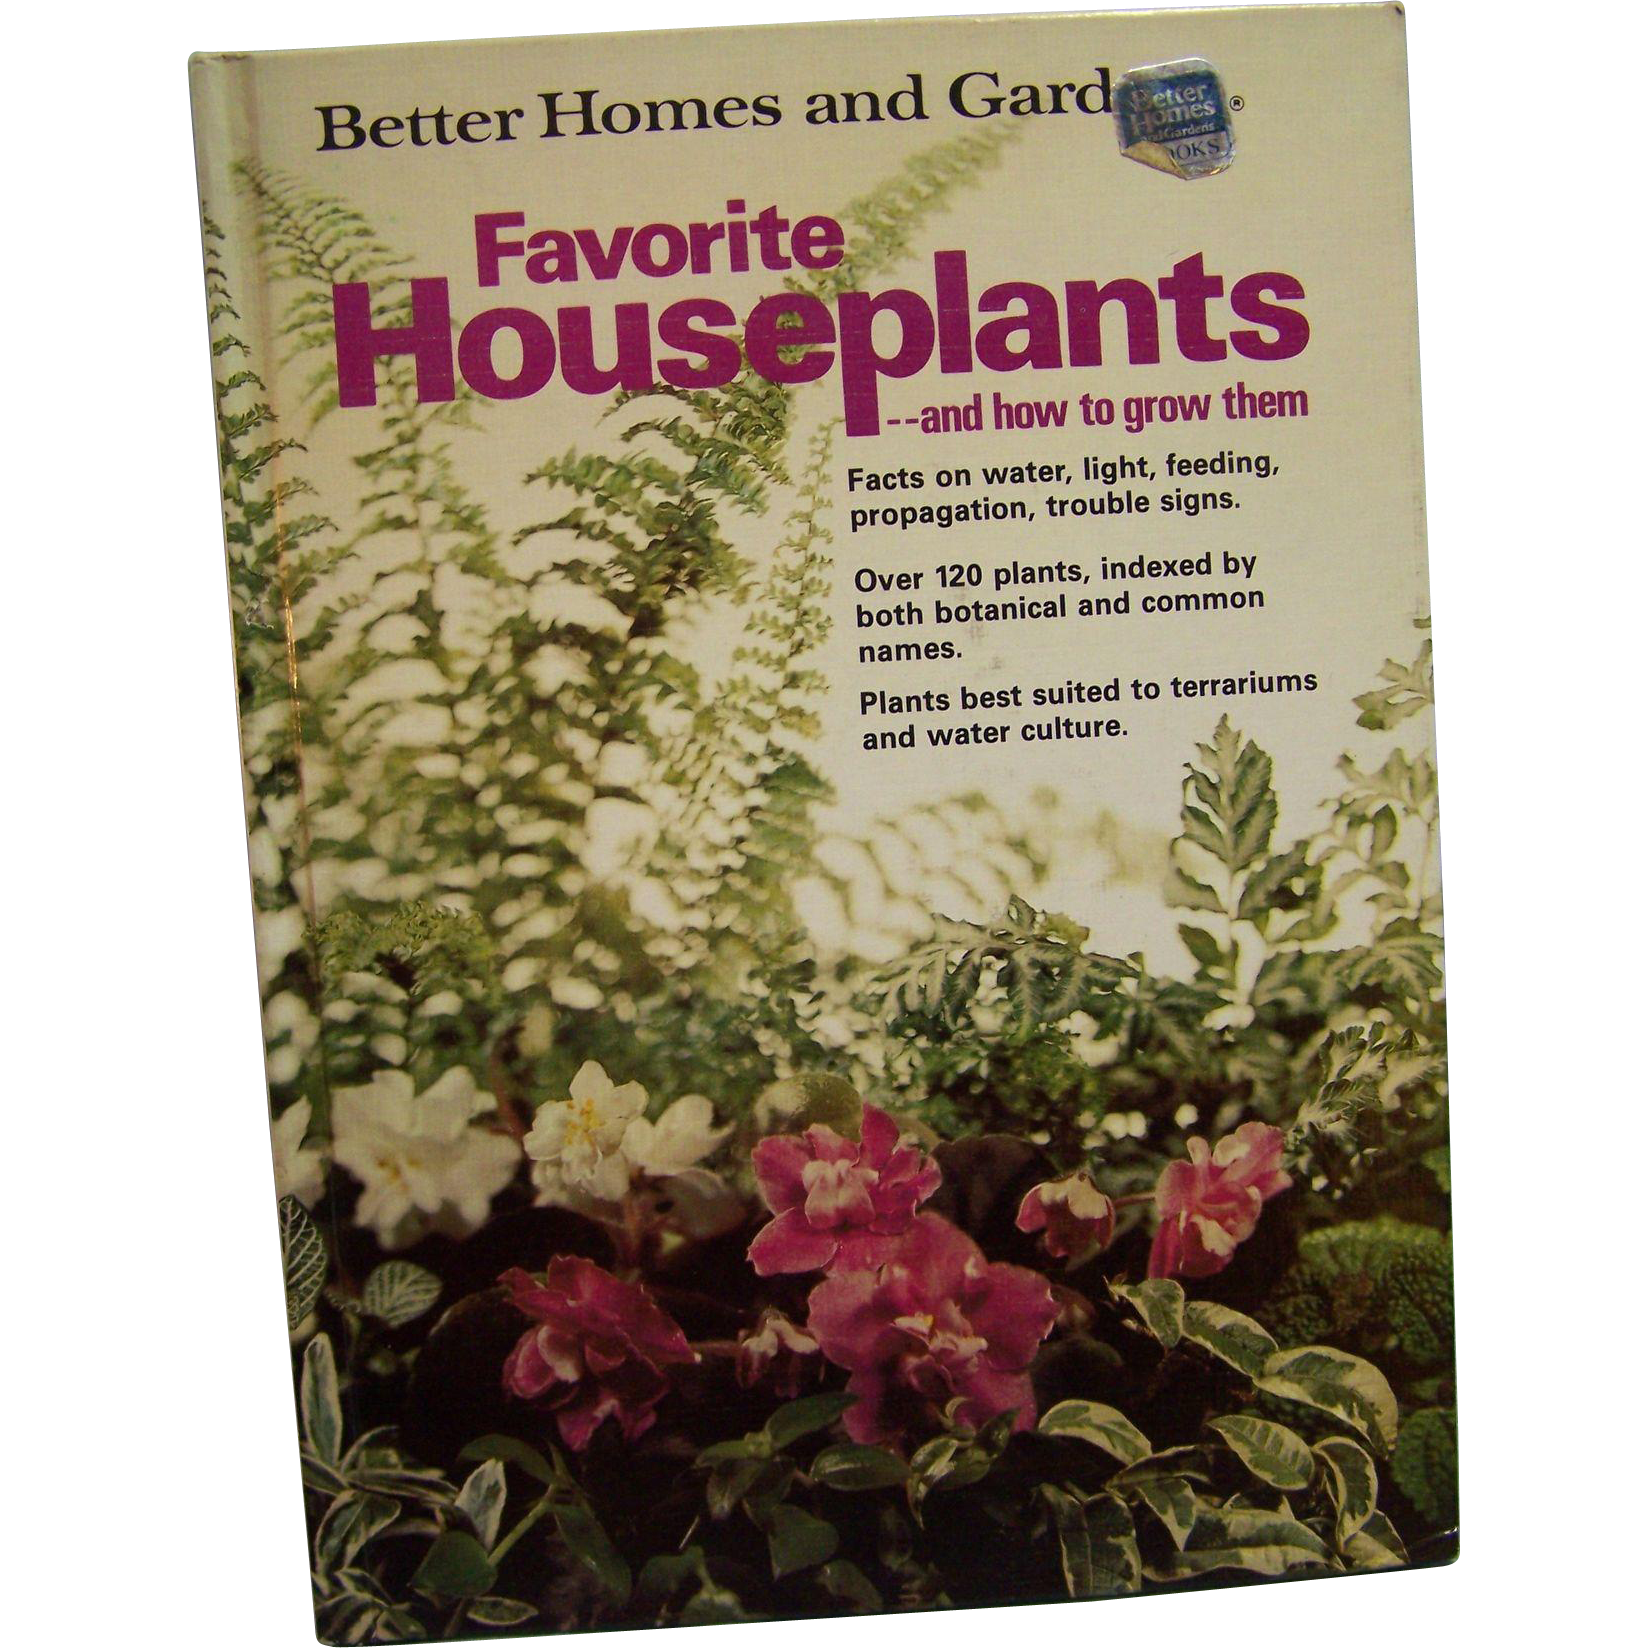 Better Homes And Garden Favorite Houseplants From Wings On